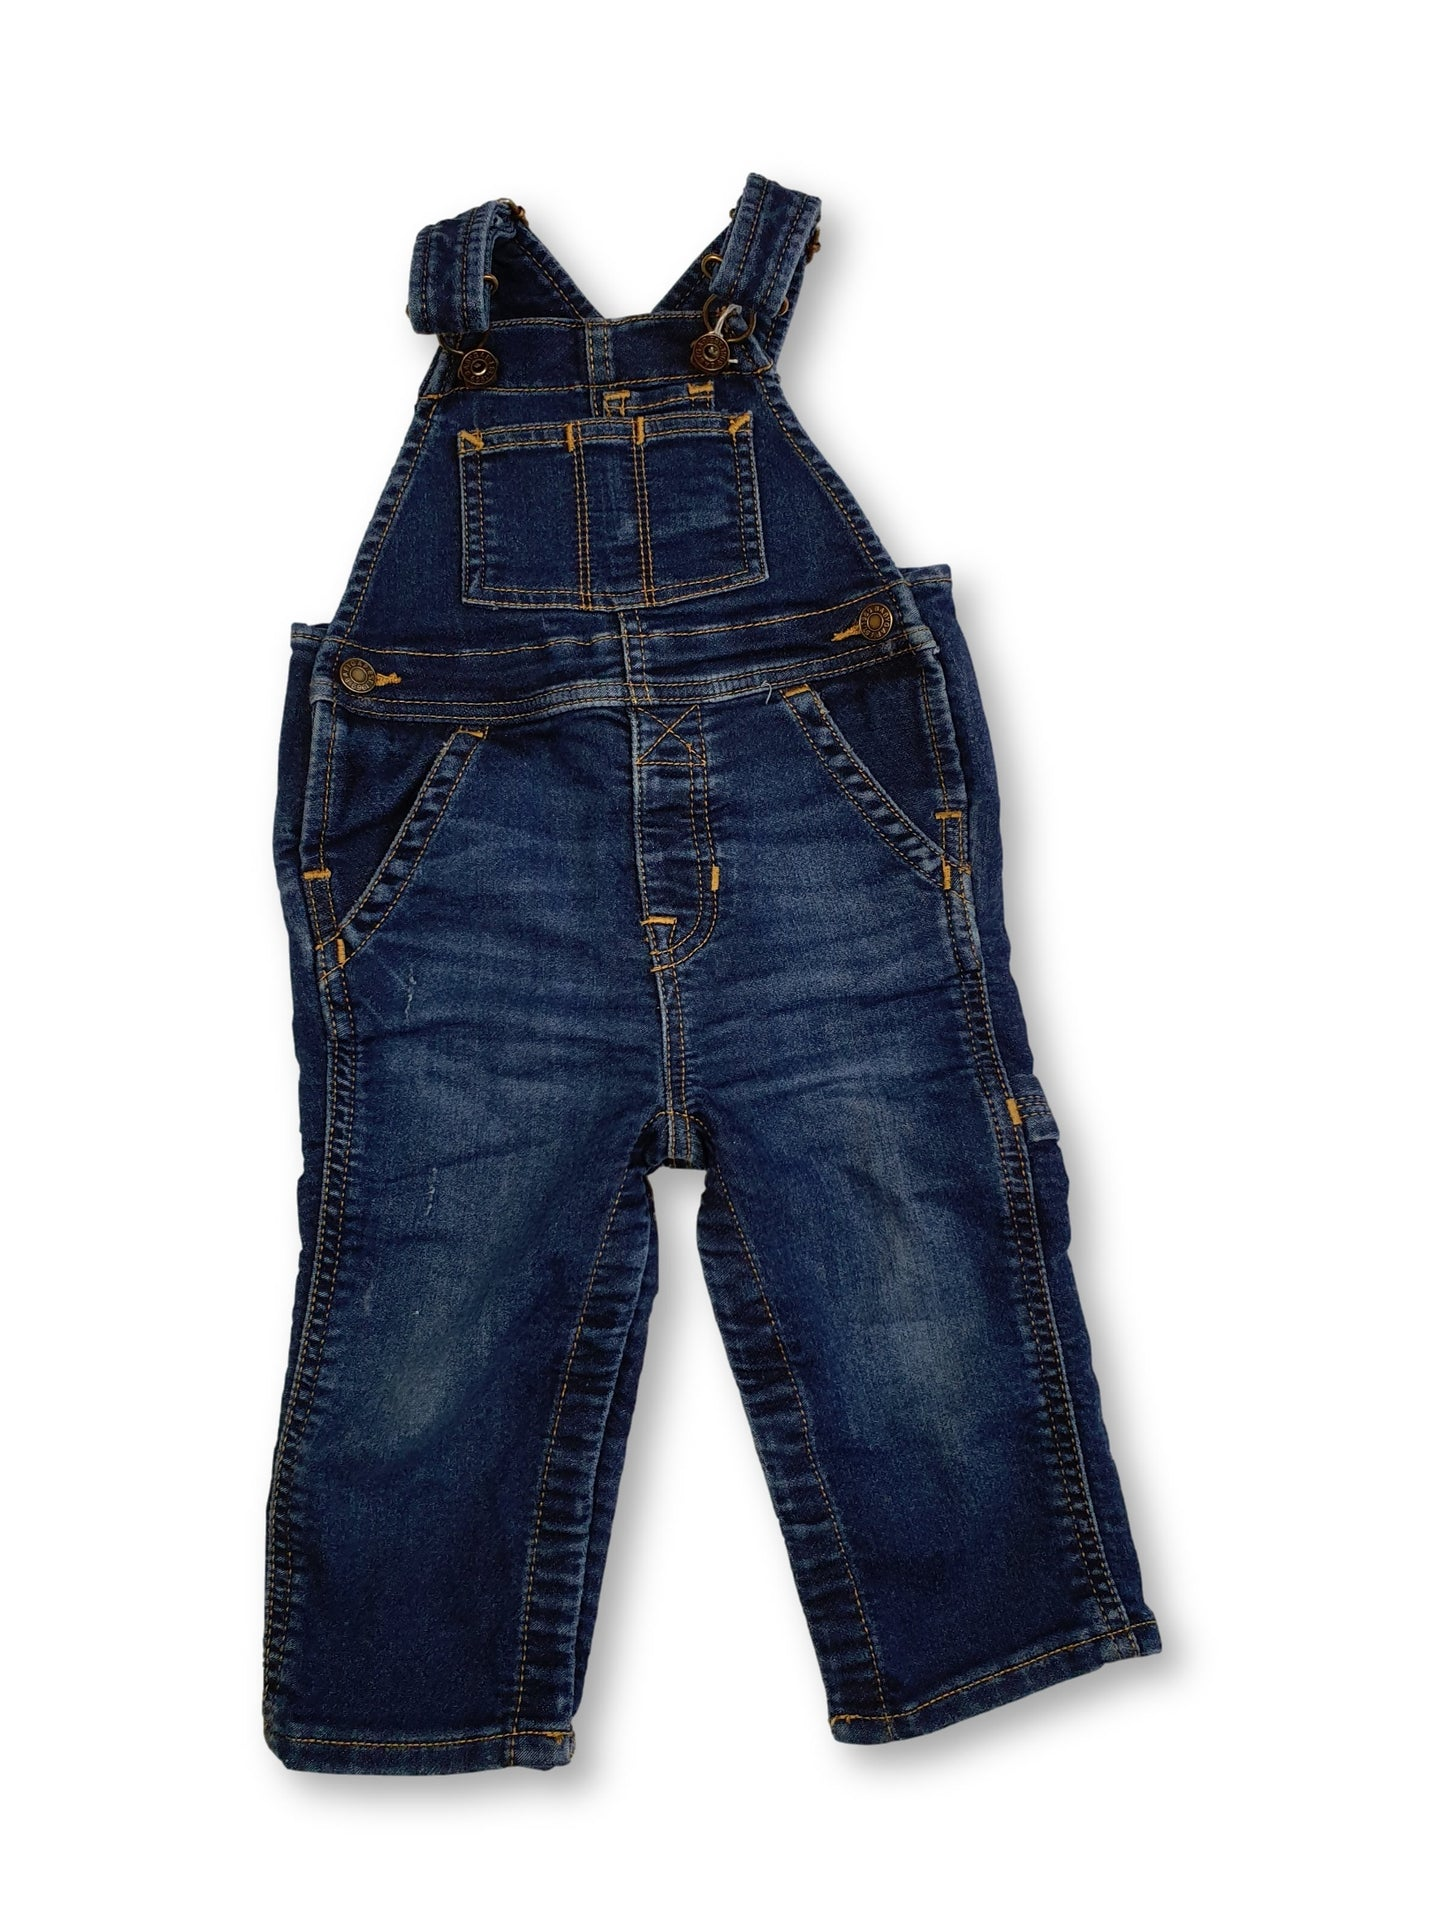 BABY GAP baby dungaree 12m - FAMILY AFFAIRE